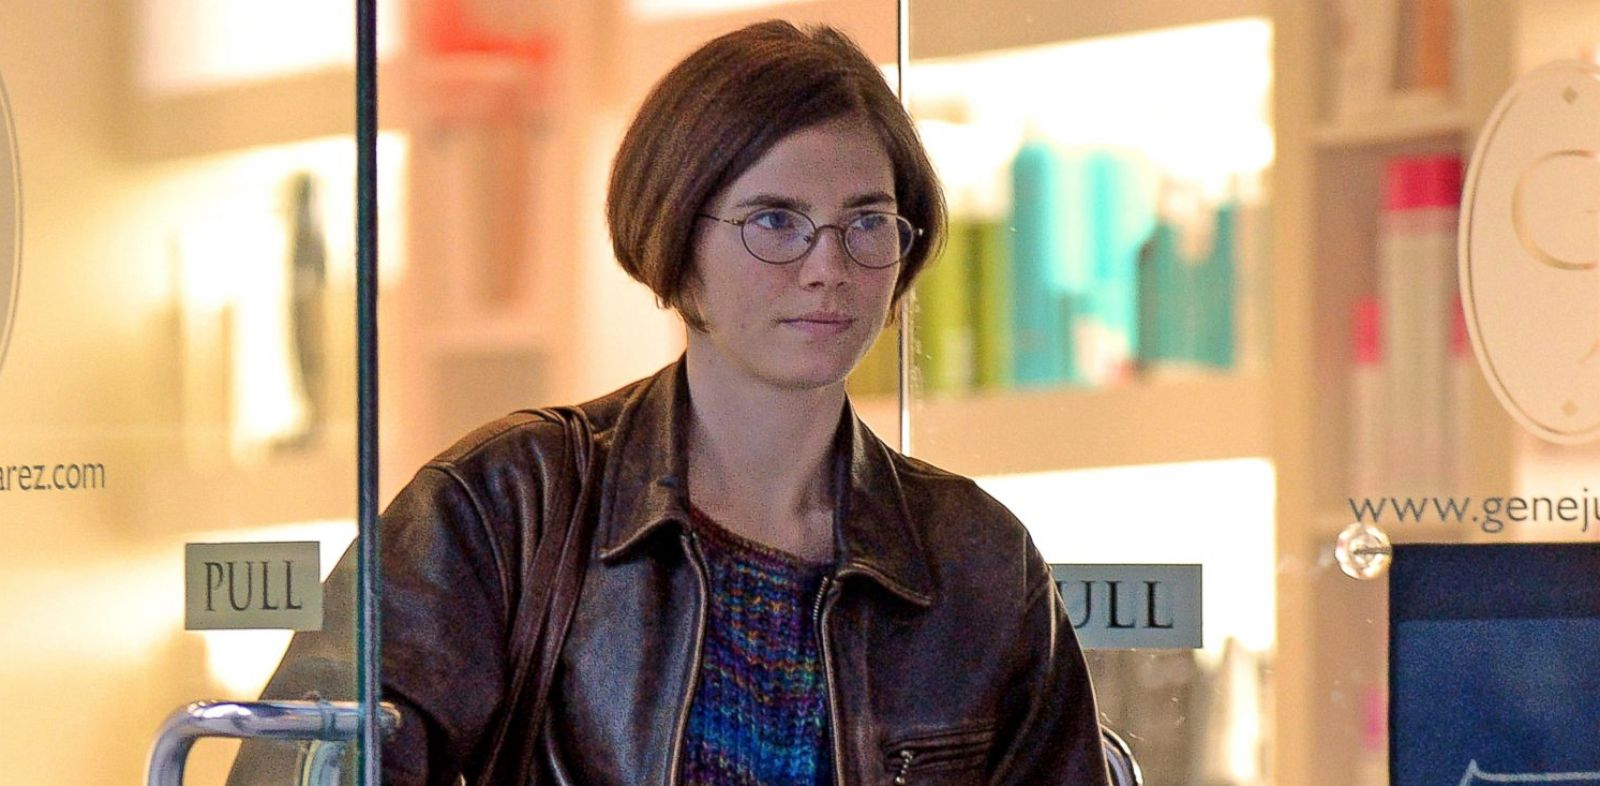 PHOTO: Amanda Knox steps out of a salon, Jan. 28, 2014, in Seattle.